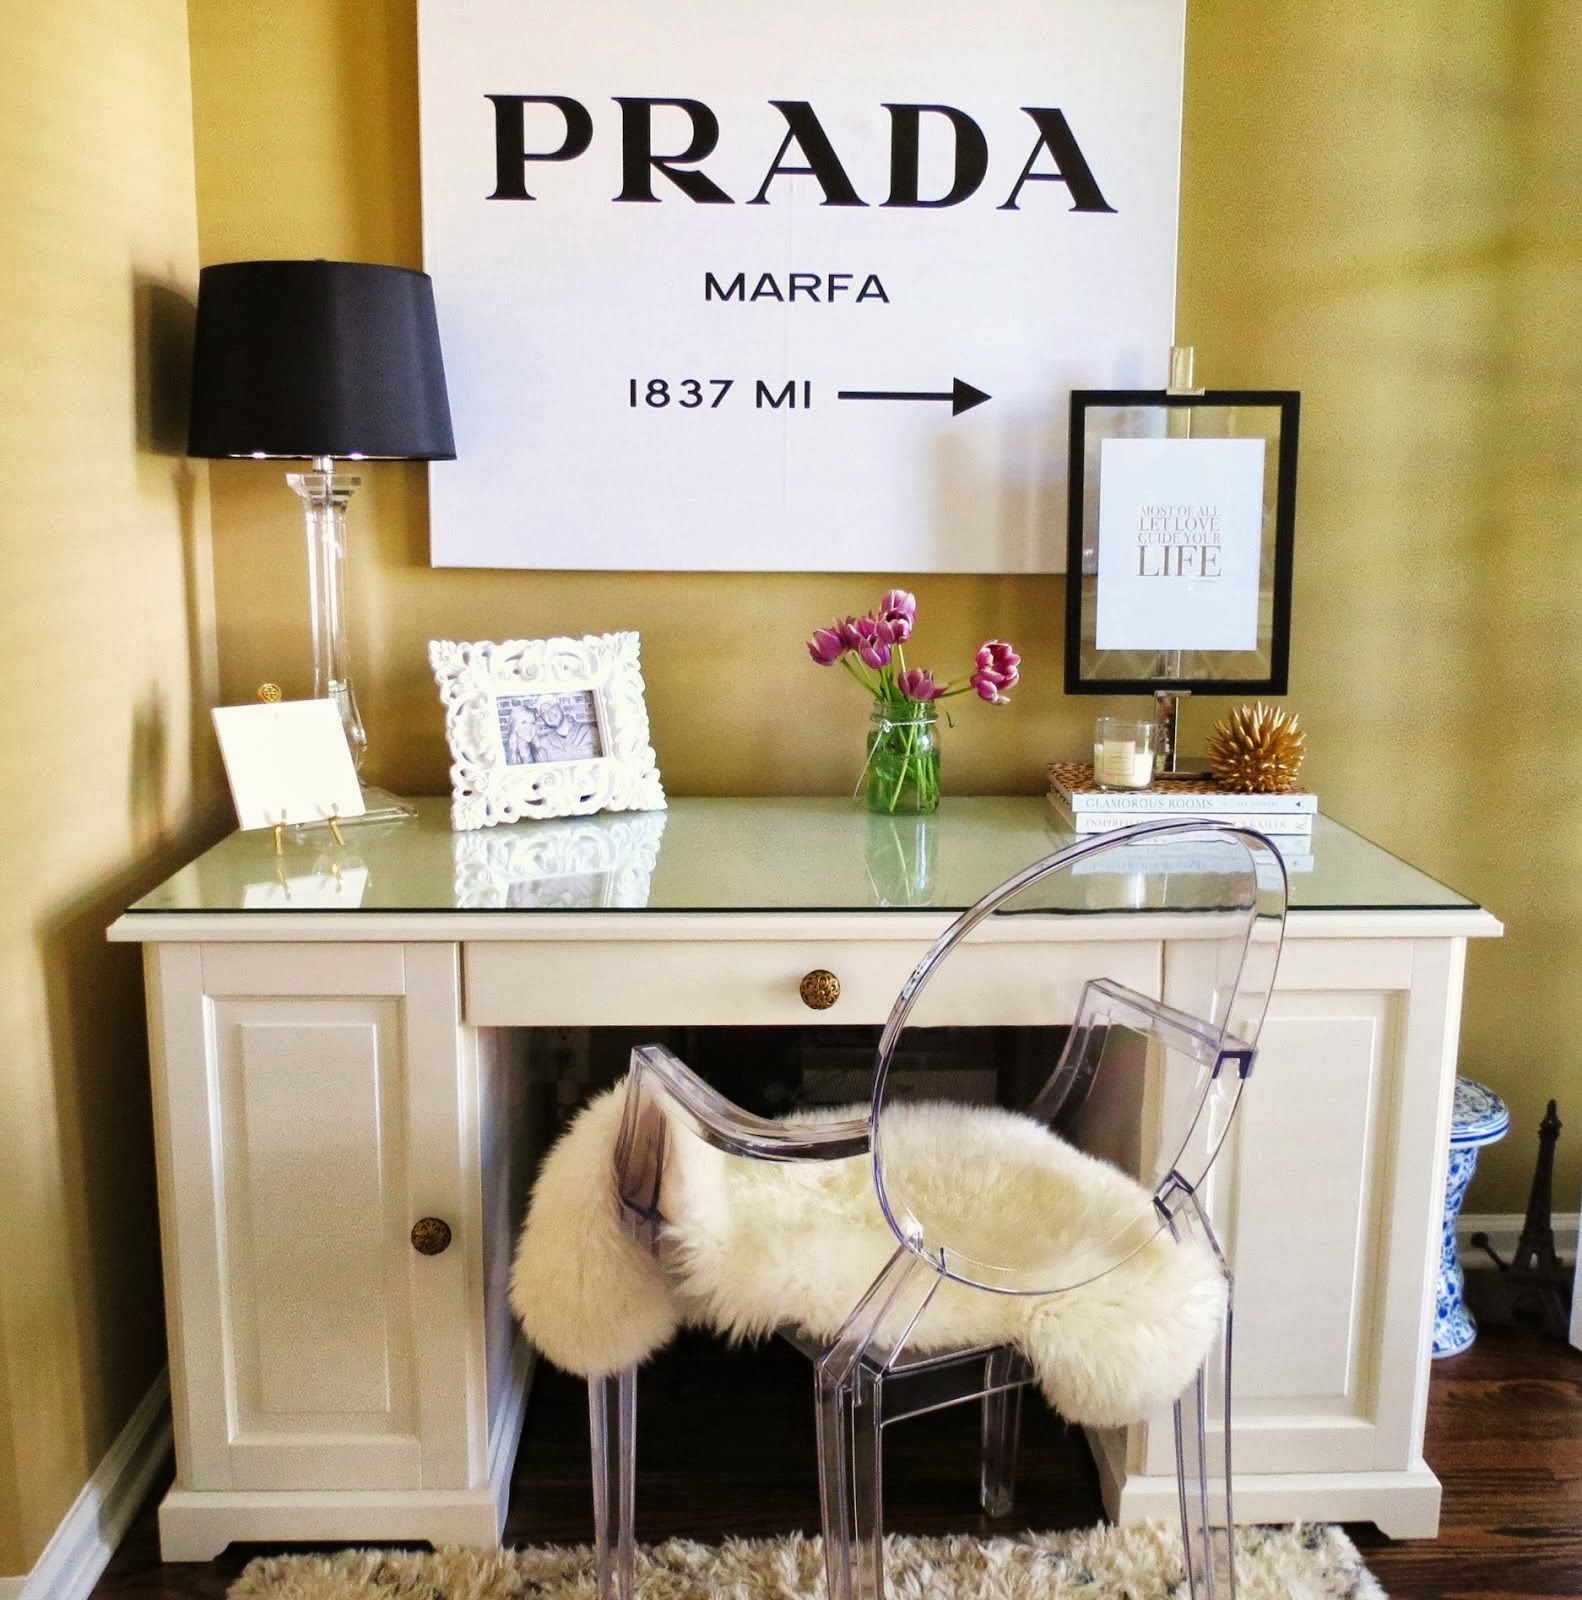 prada marfa bild selber machen gossip girl. Black Bedroom Furniture Sets. Home Design Ideas